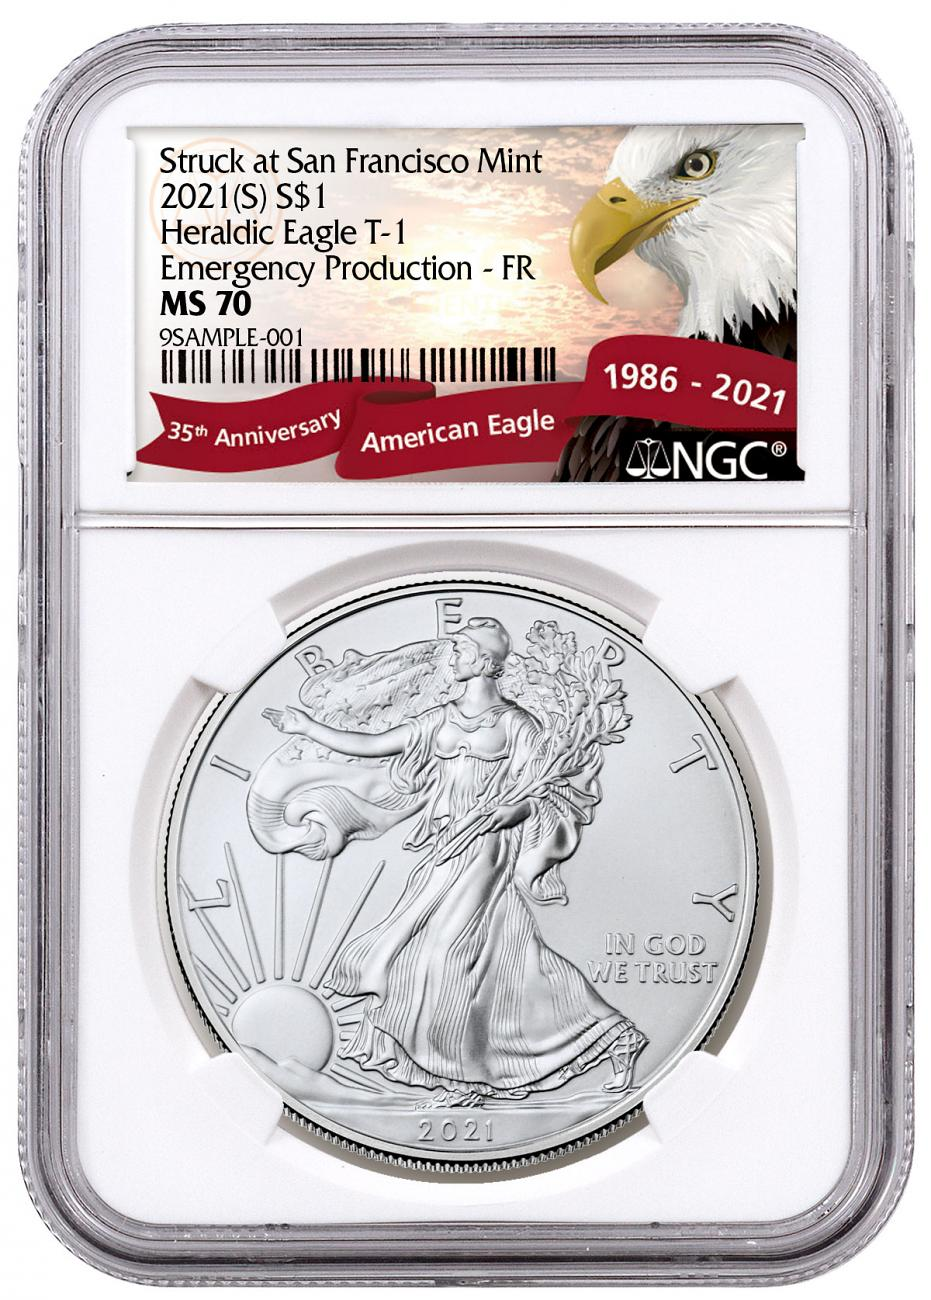 2021-(S) American Silver Eagle Emergency Production Struck at San Francisco Mint T-1 NGC MS70 FR Exclusive Eagle Label